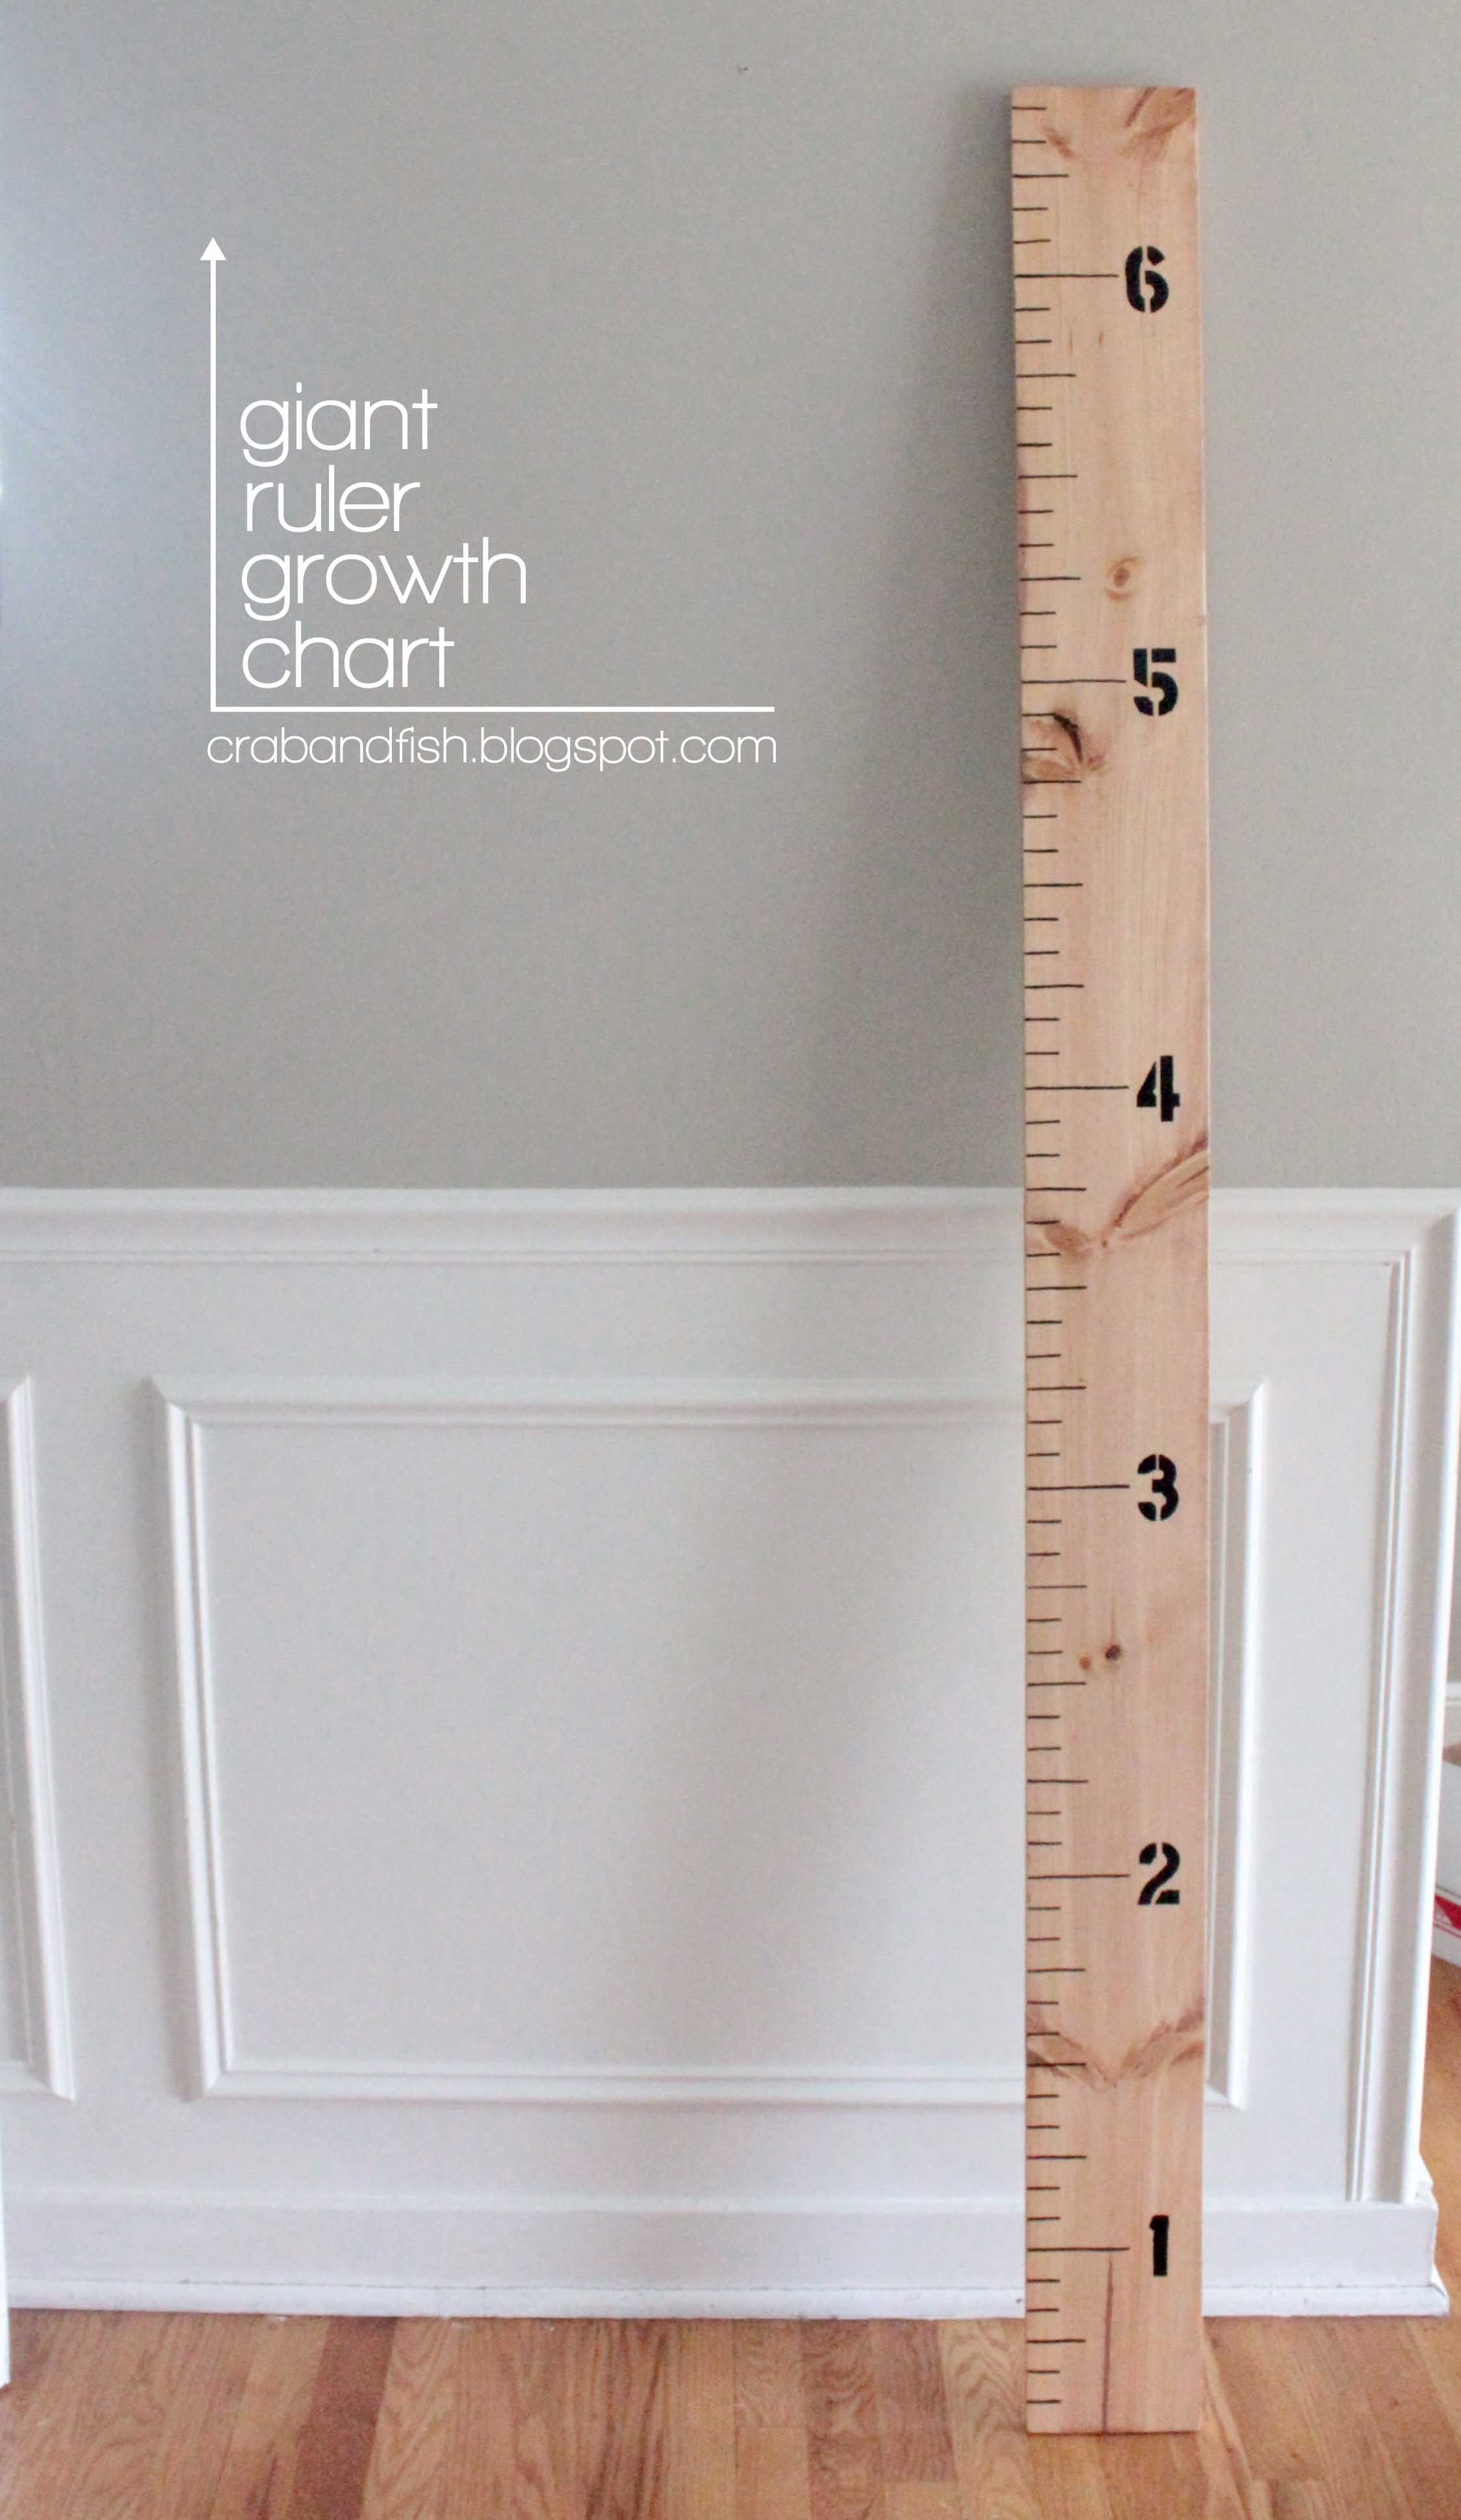 Giant Rule Growth Chart Growth chart ruler, Giant ruler